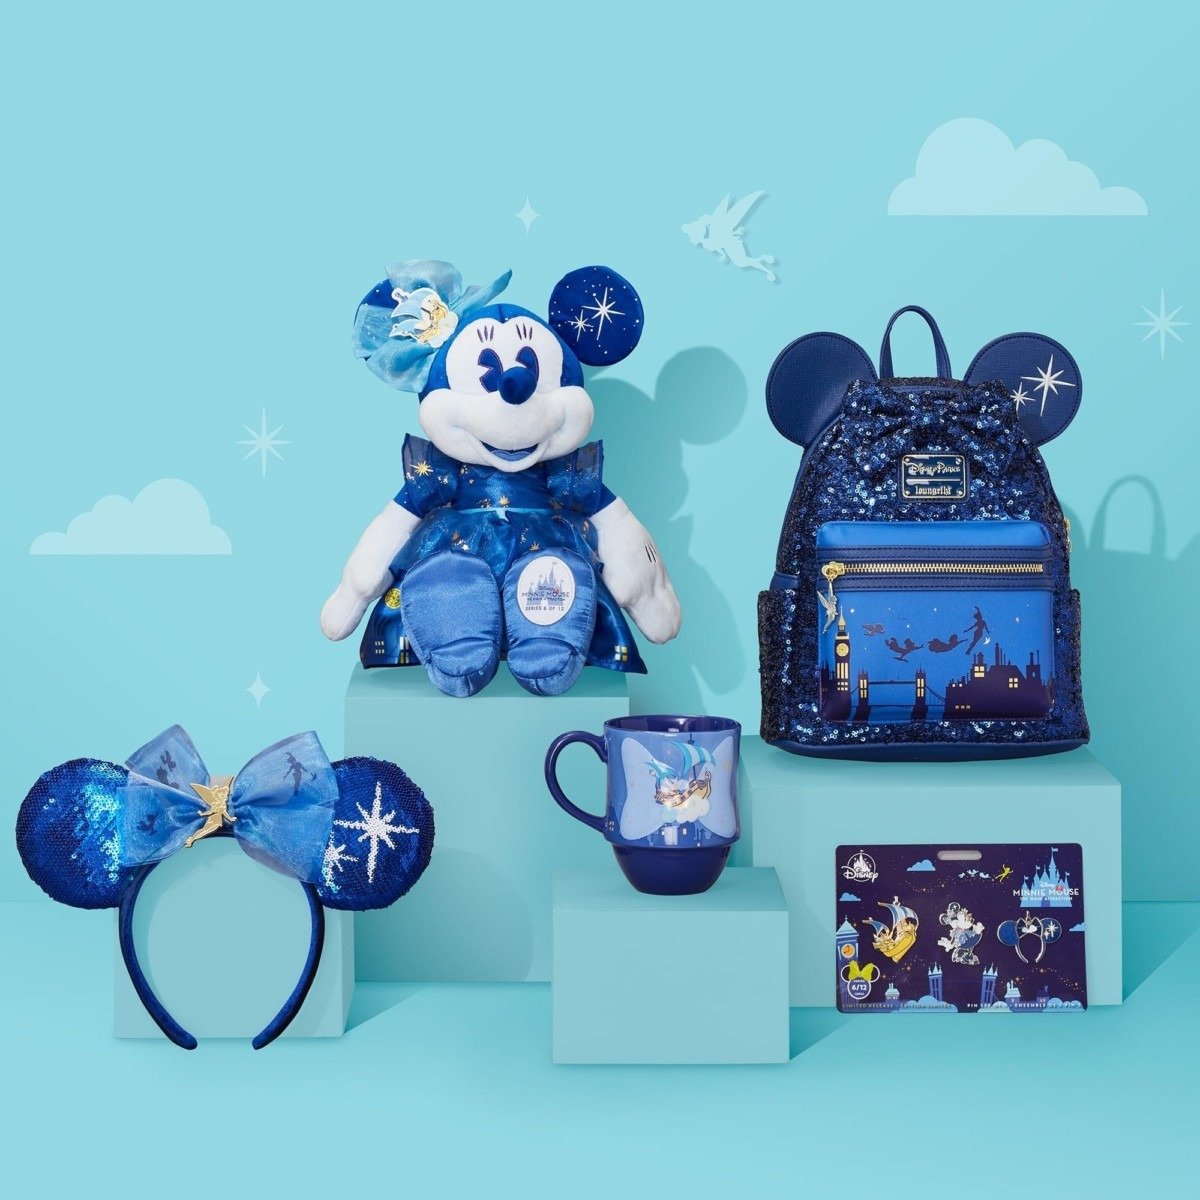 Minnie Mouse; The Main Attraction Merch Line for June! Peter Pan's Flight 1